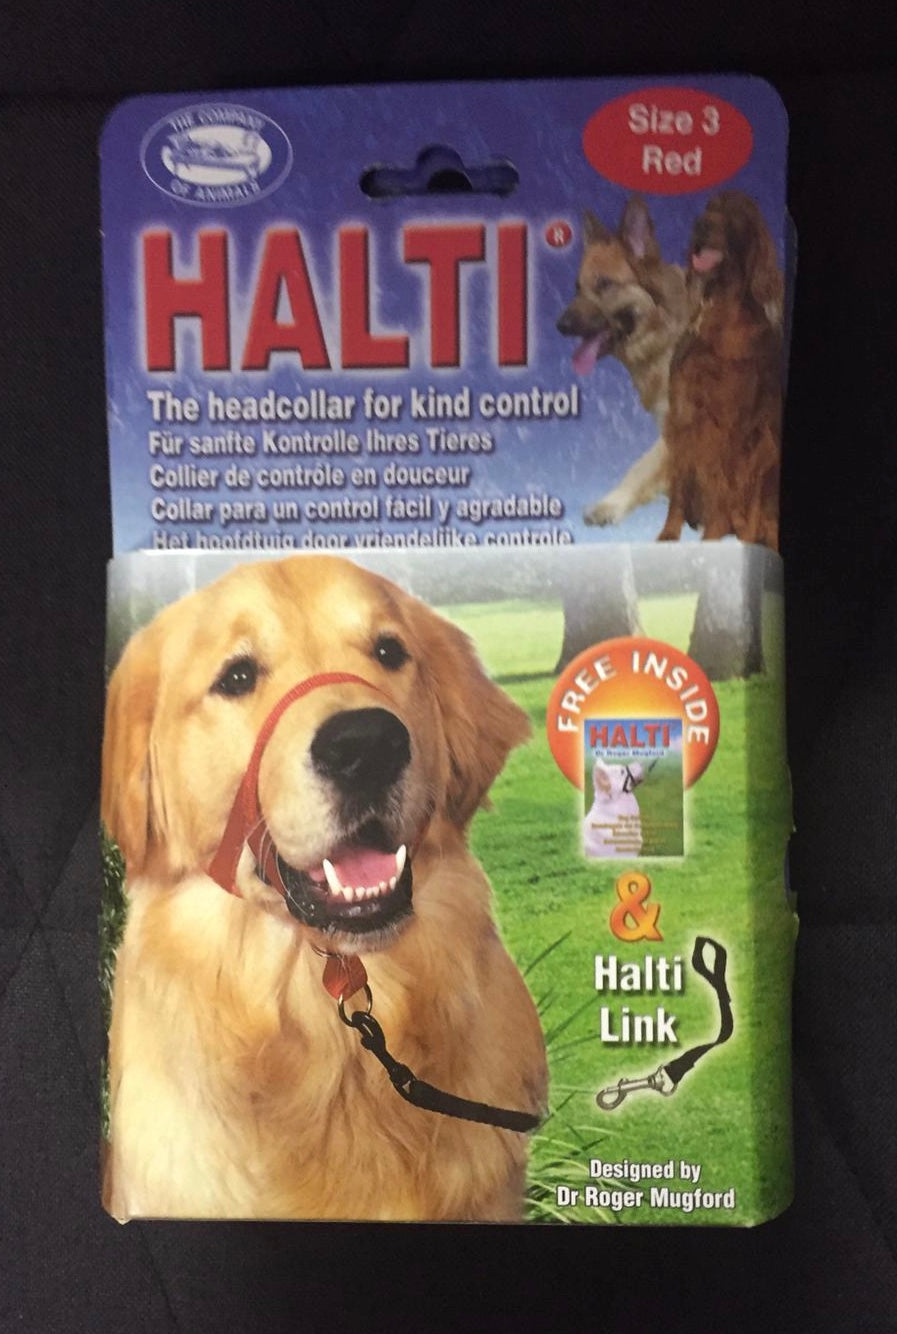 Dog Halti Headcollar, size 3 in red